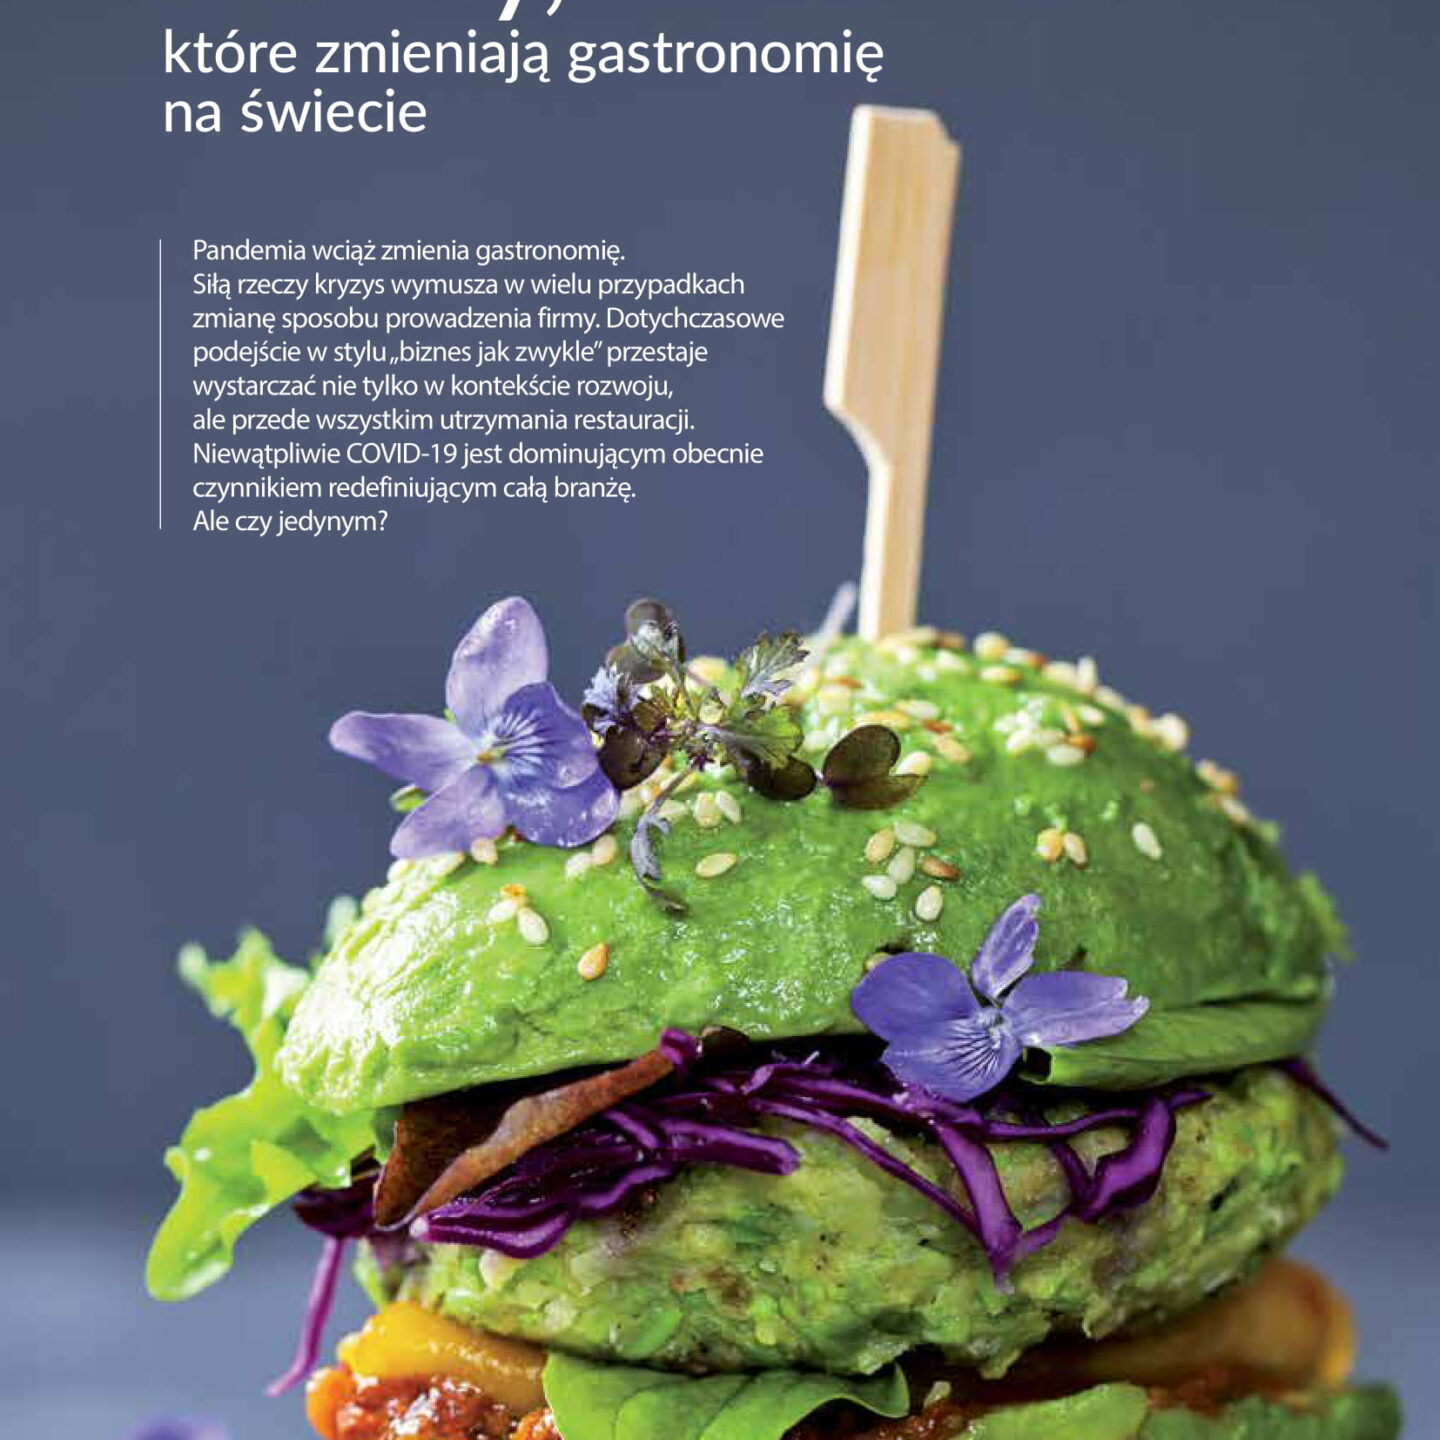 Nasz nowy artykuł o globalnych trendach w gastro ENG: our new article on global trends in gastronomy